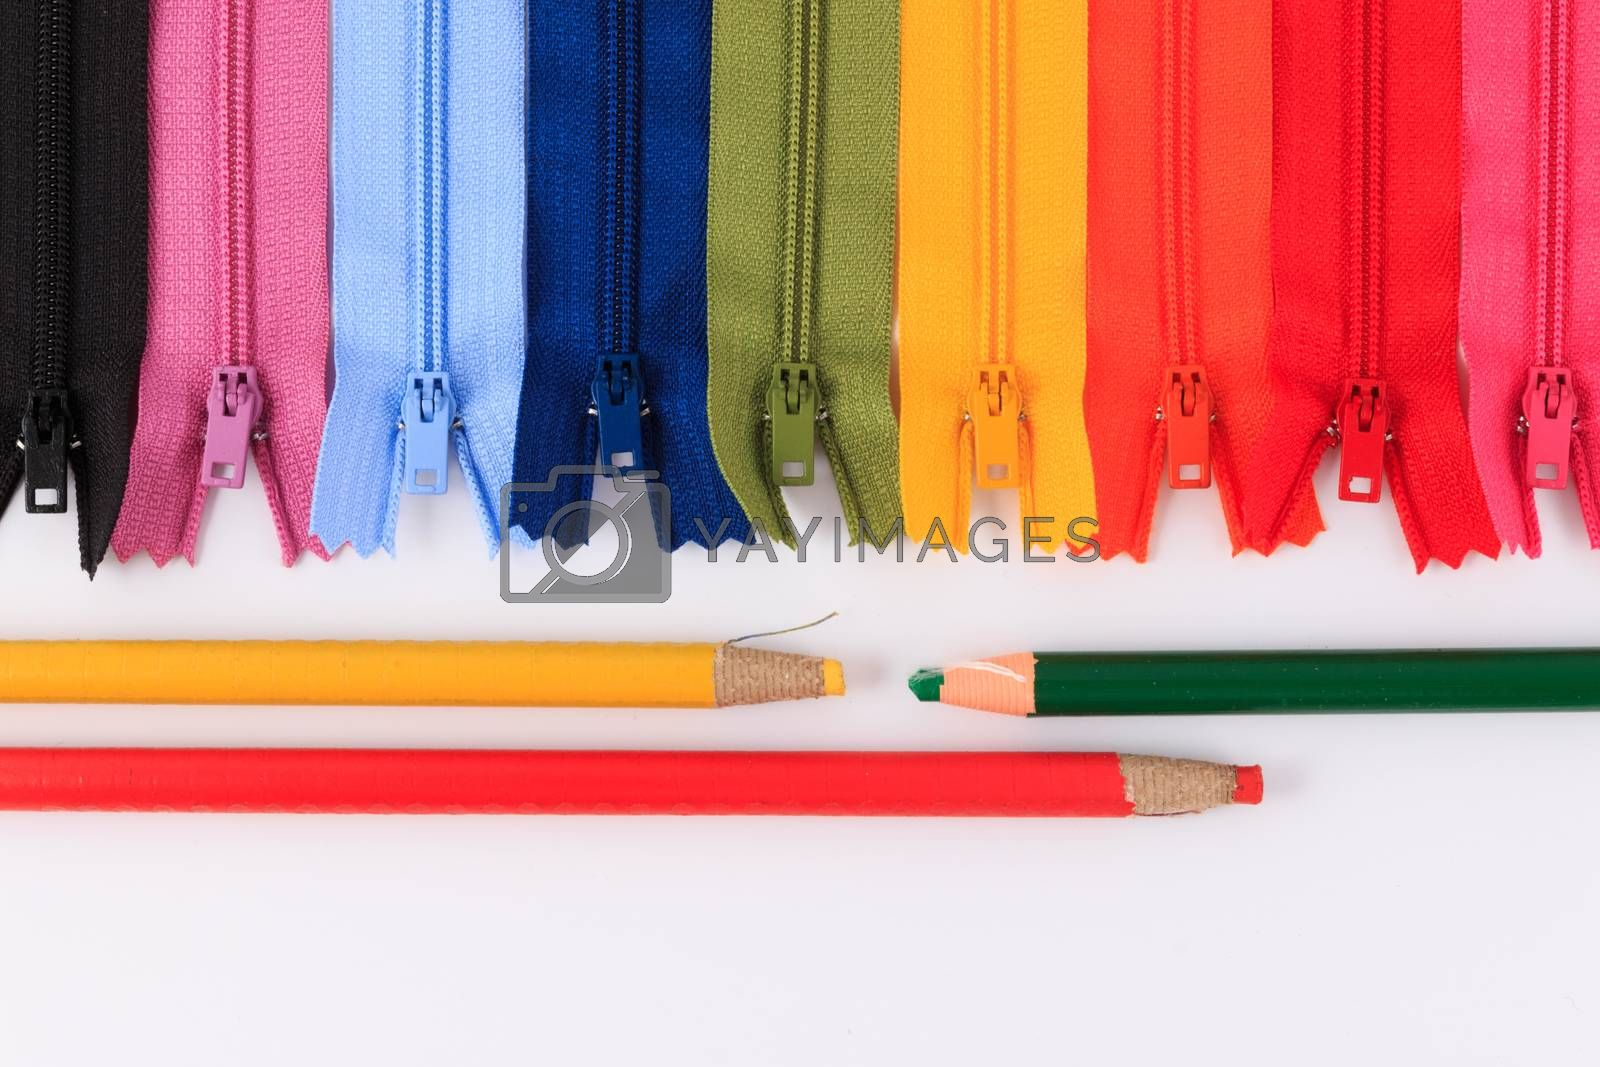 Colorful zippers and pencils on white background.